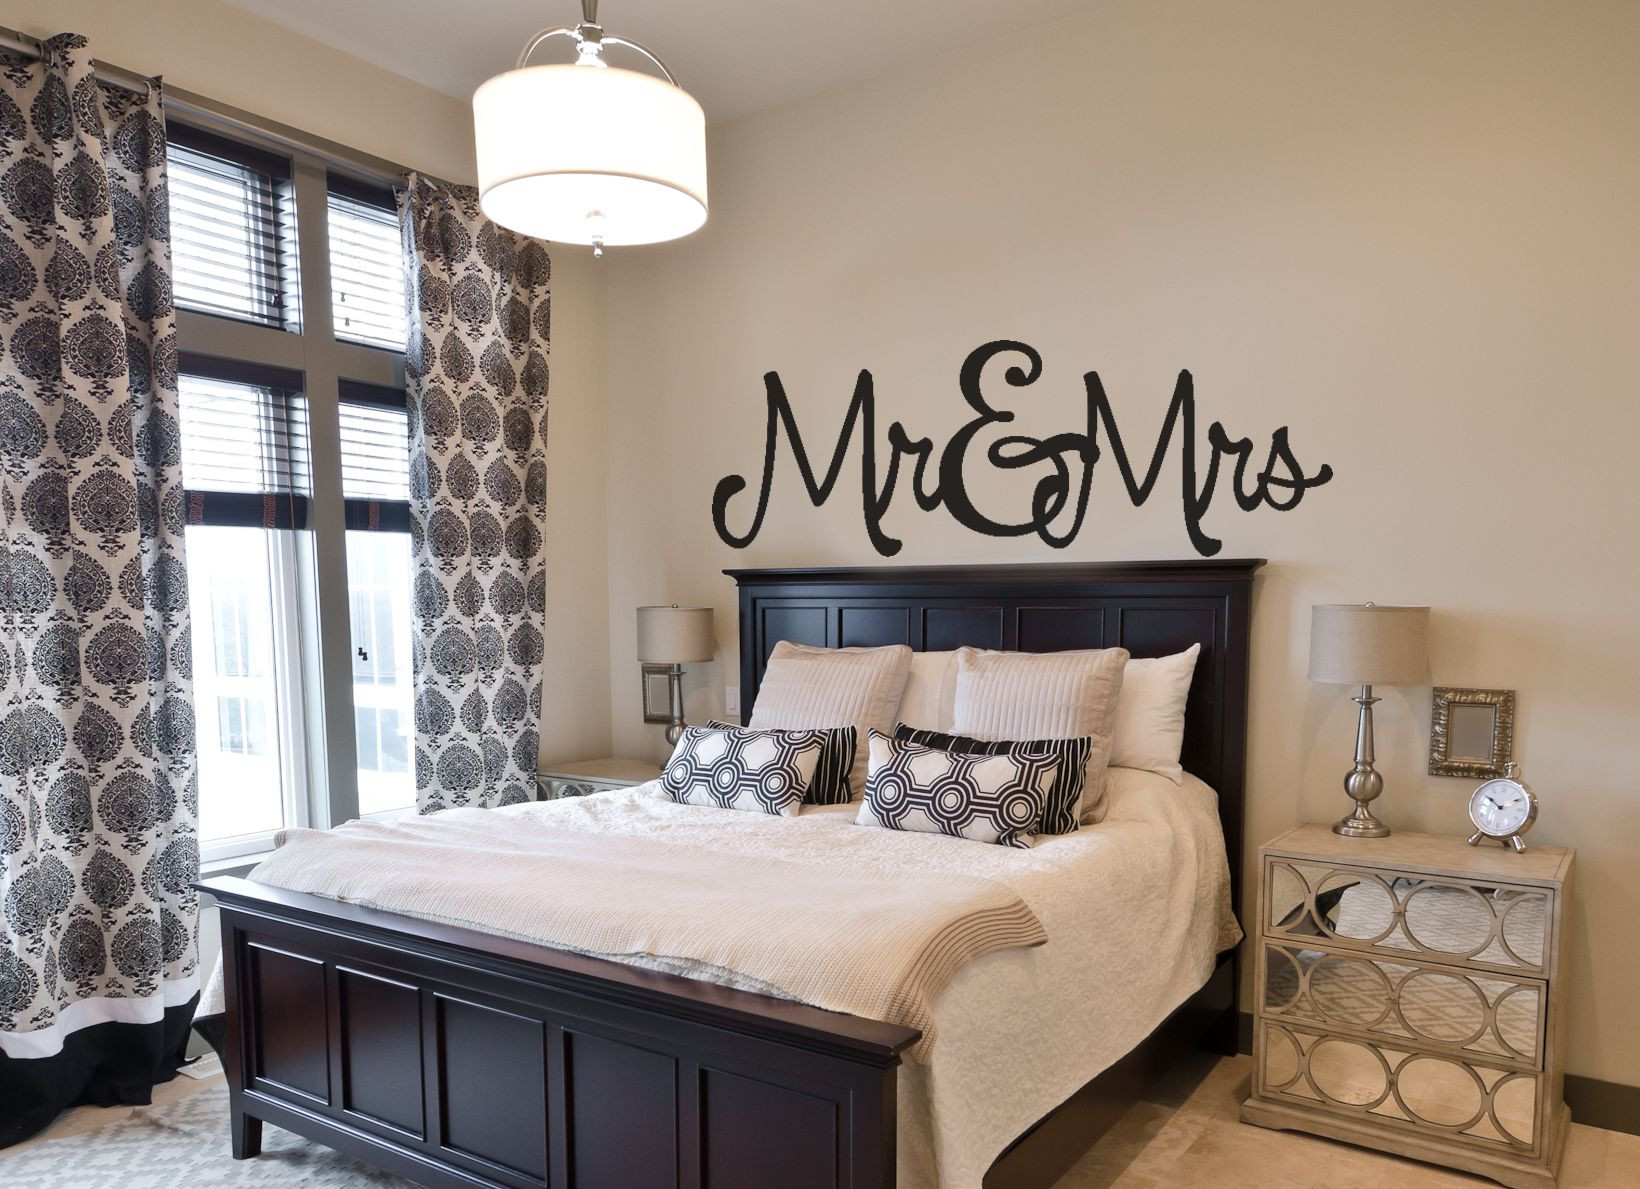 Best ideas about Bedroom Wall Decor . Save or Pin Bedroom Wall Decal Mr & Mrs Now.